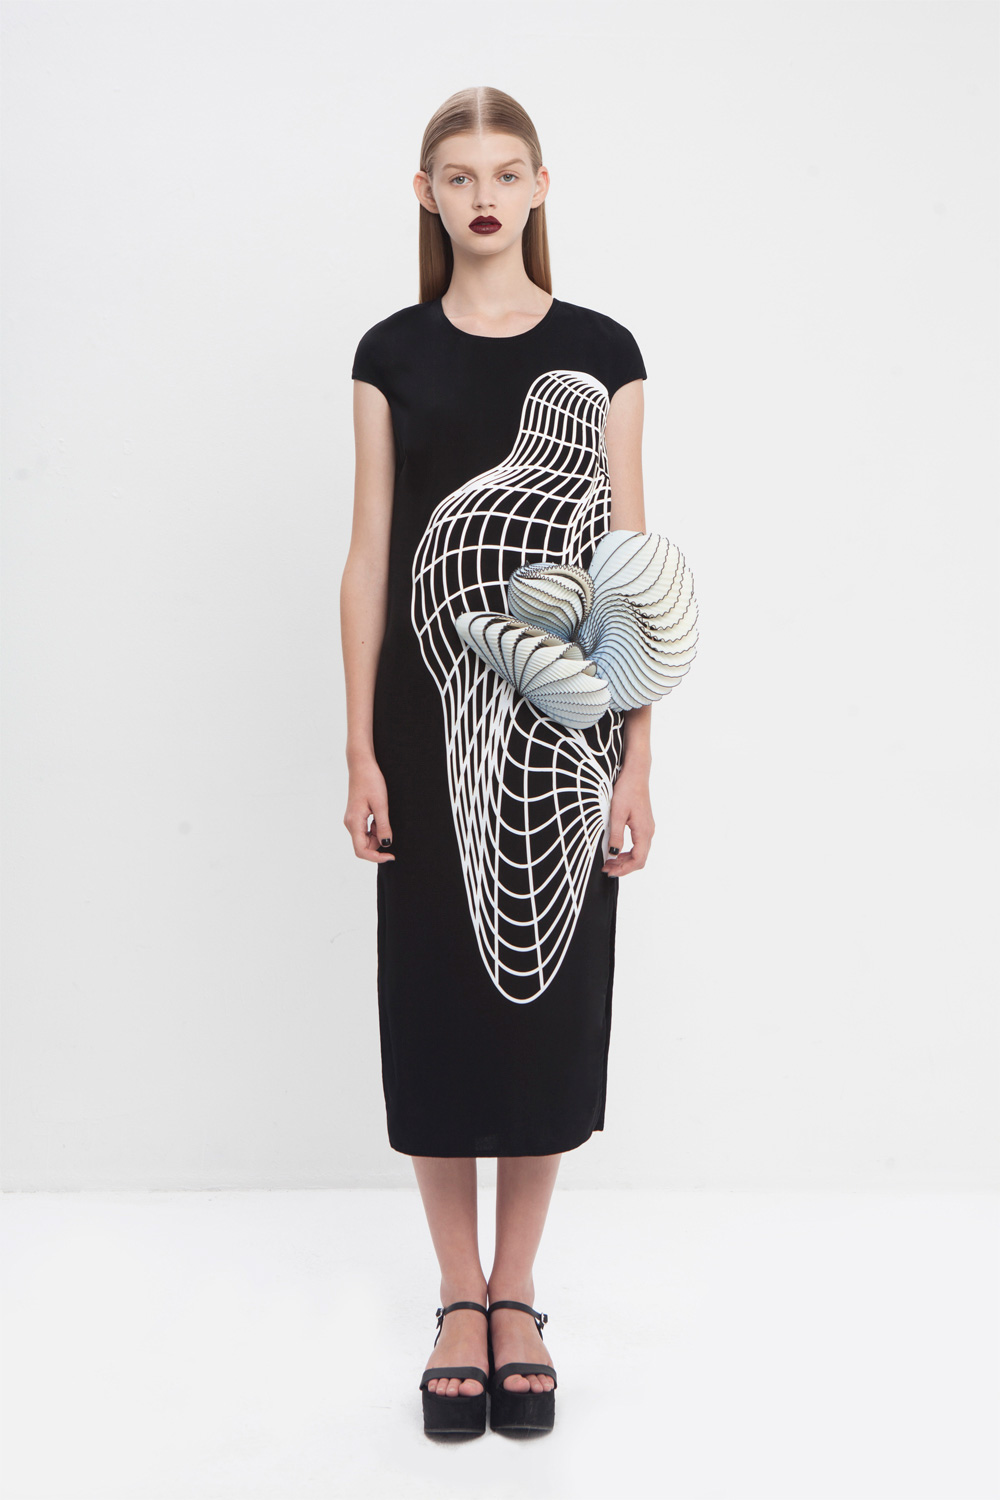 Noa Raviv's 3D Printed Couture Creations